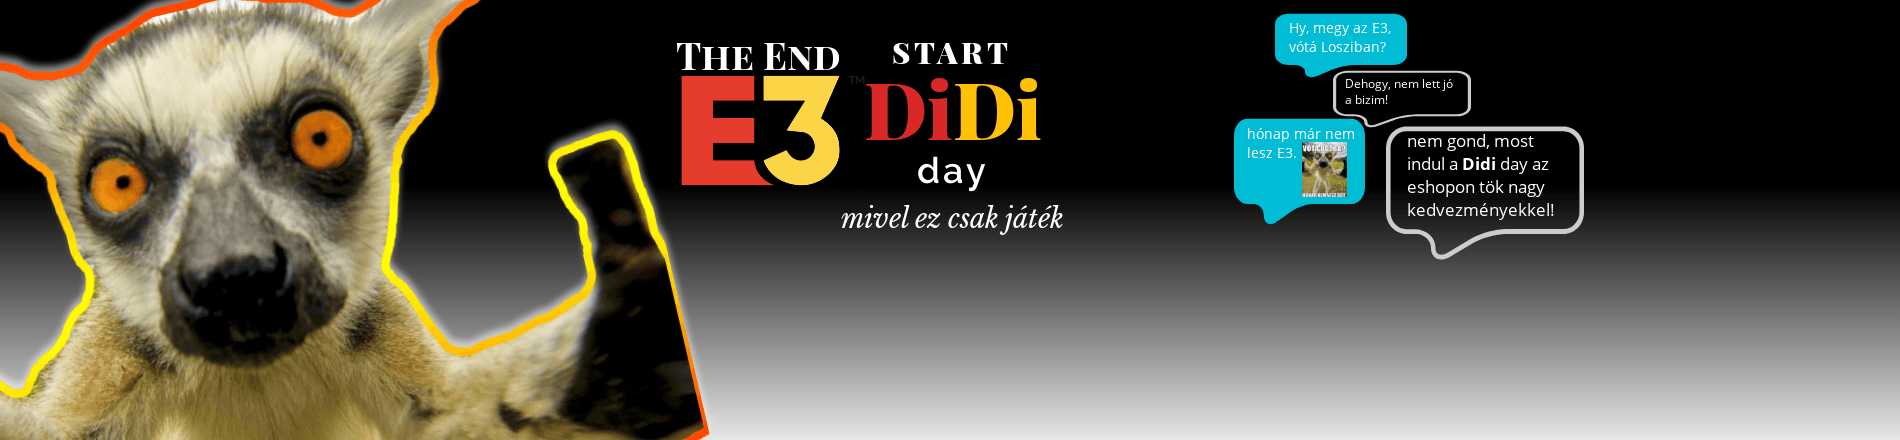 dididay